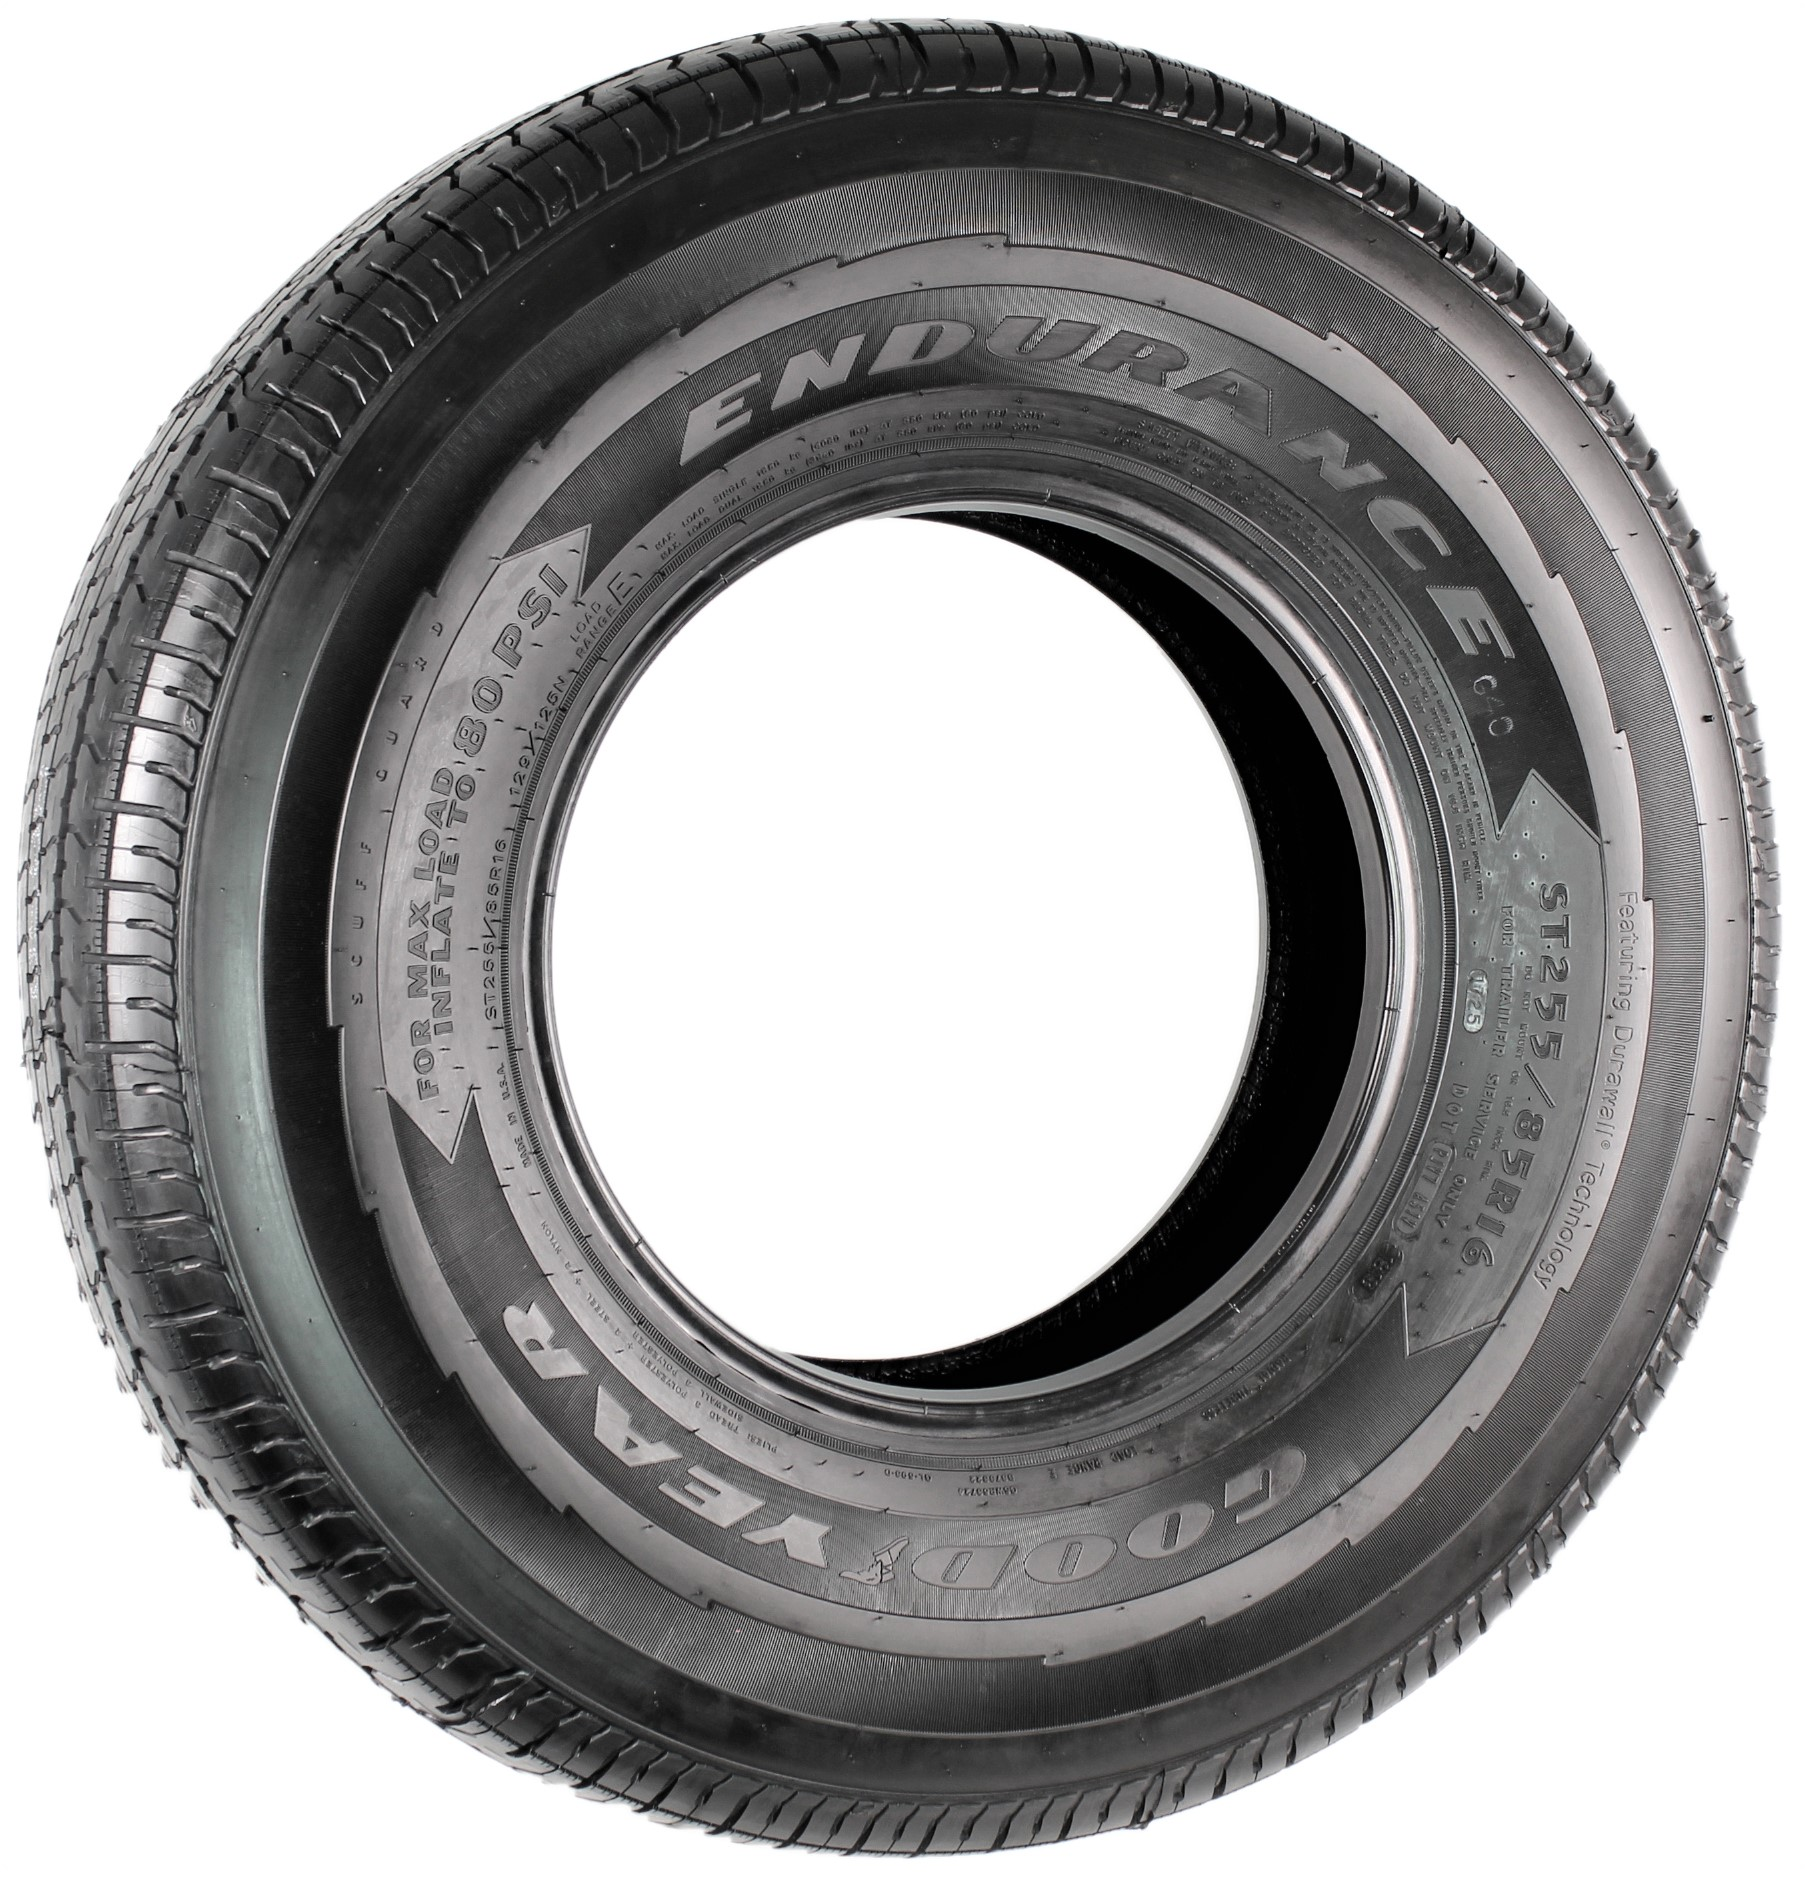 Goodyear Endurance ST255/85R16 LRE Radial Trailer Tire Image